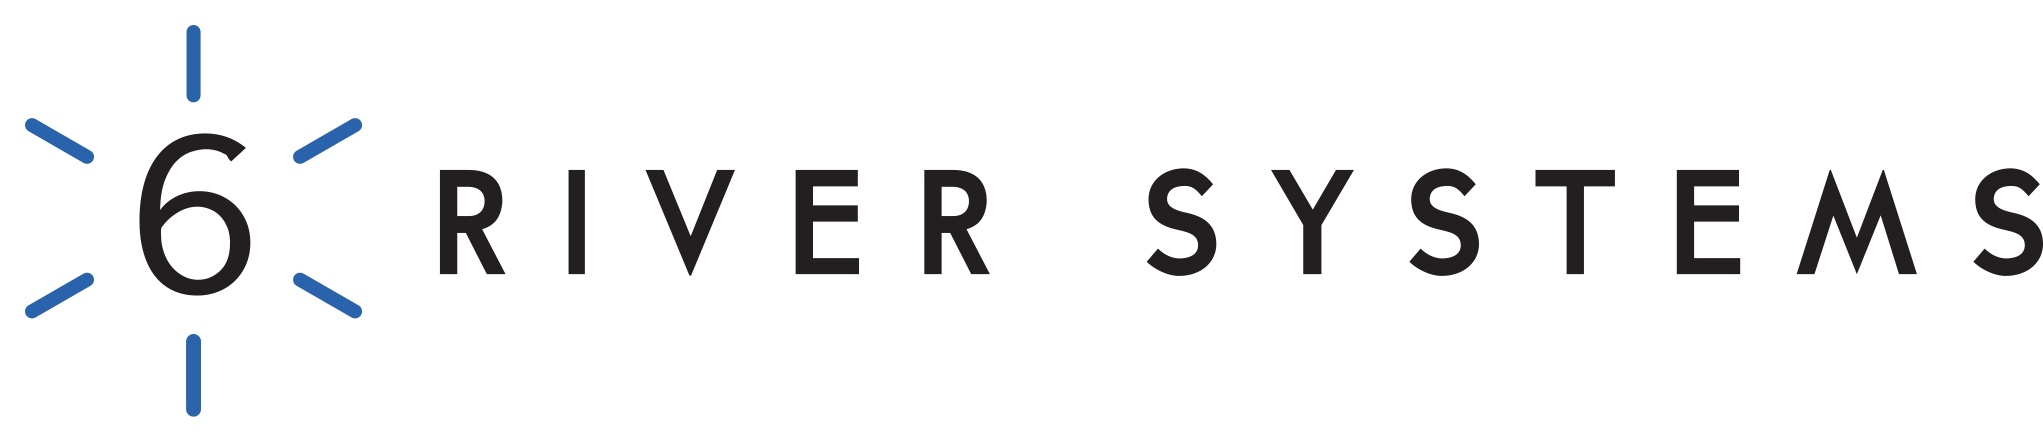 6River Systems Logo